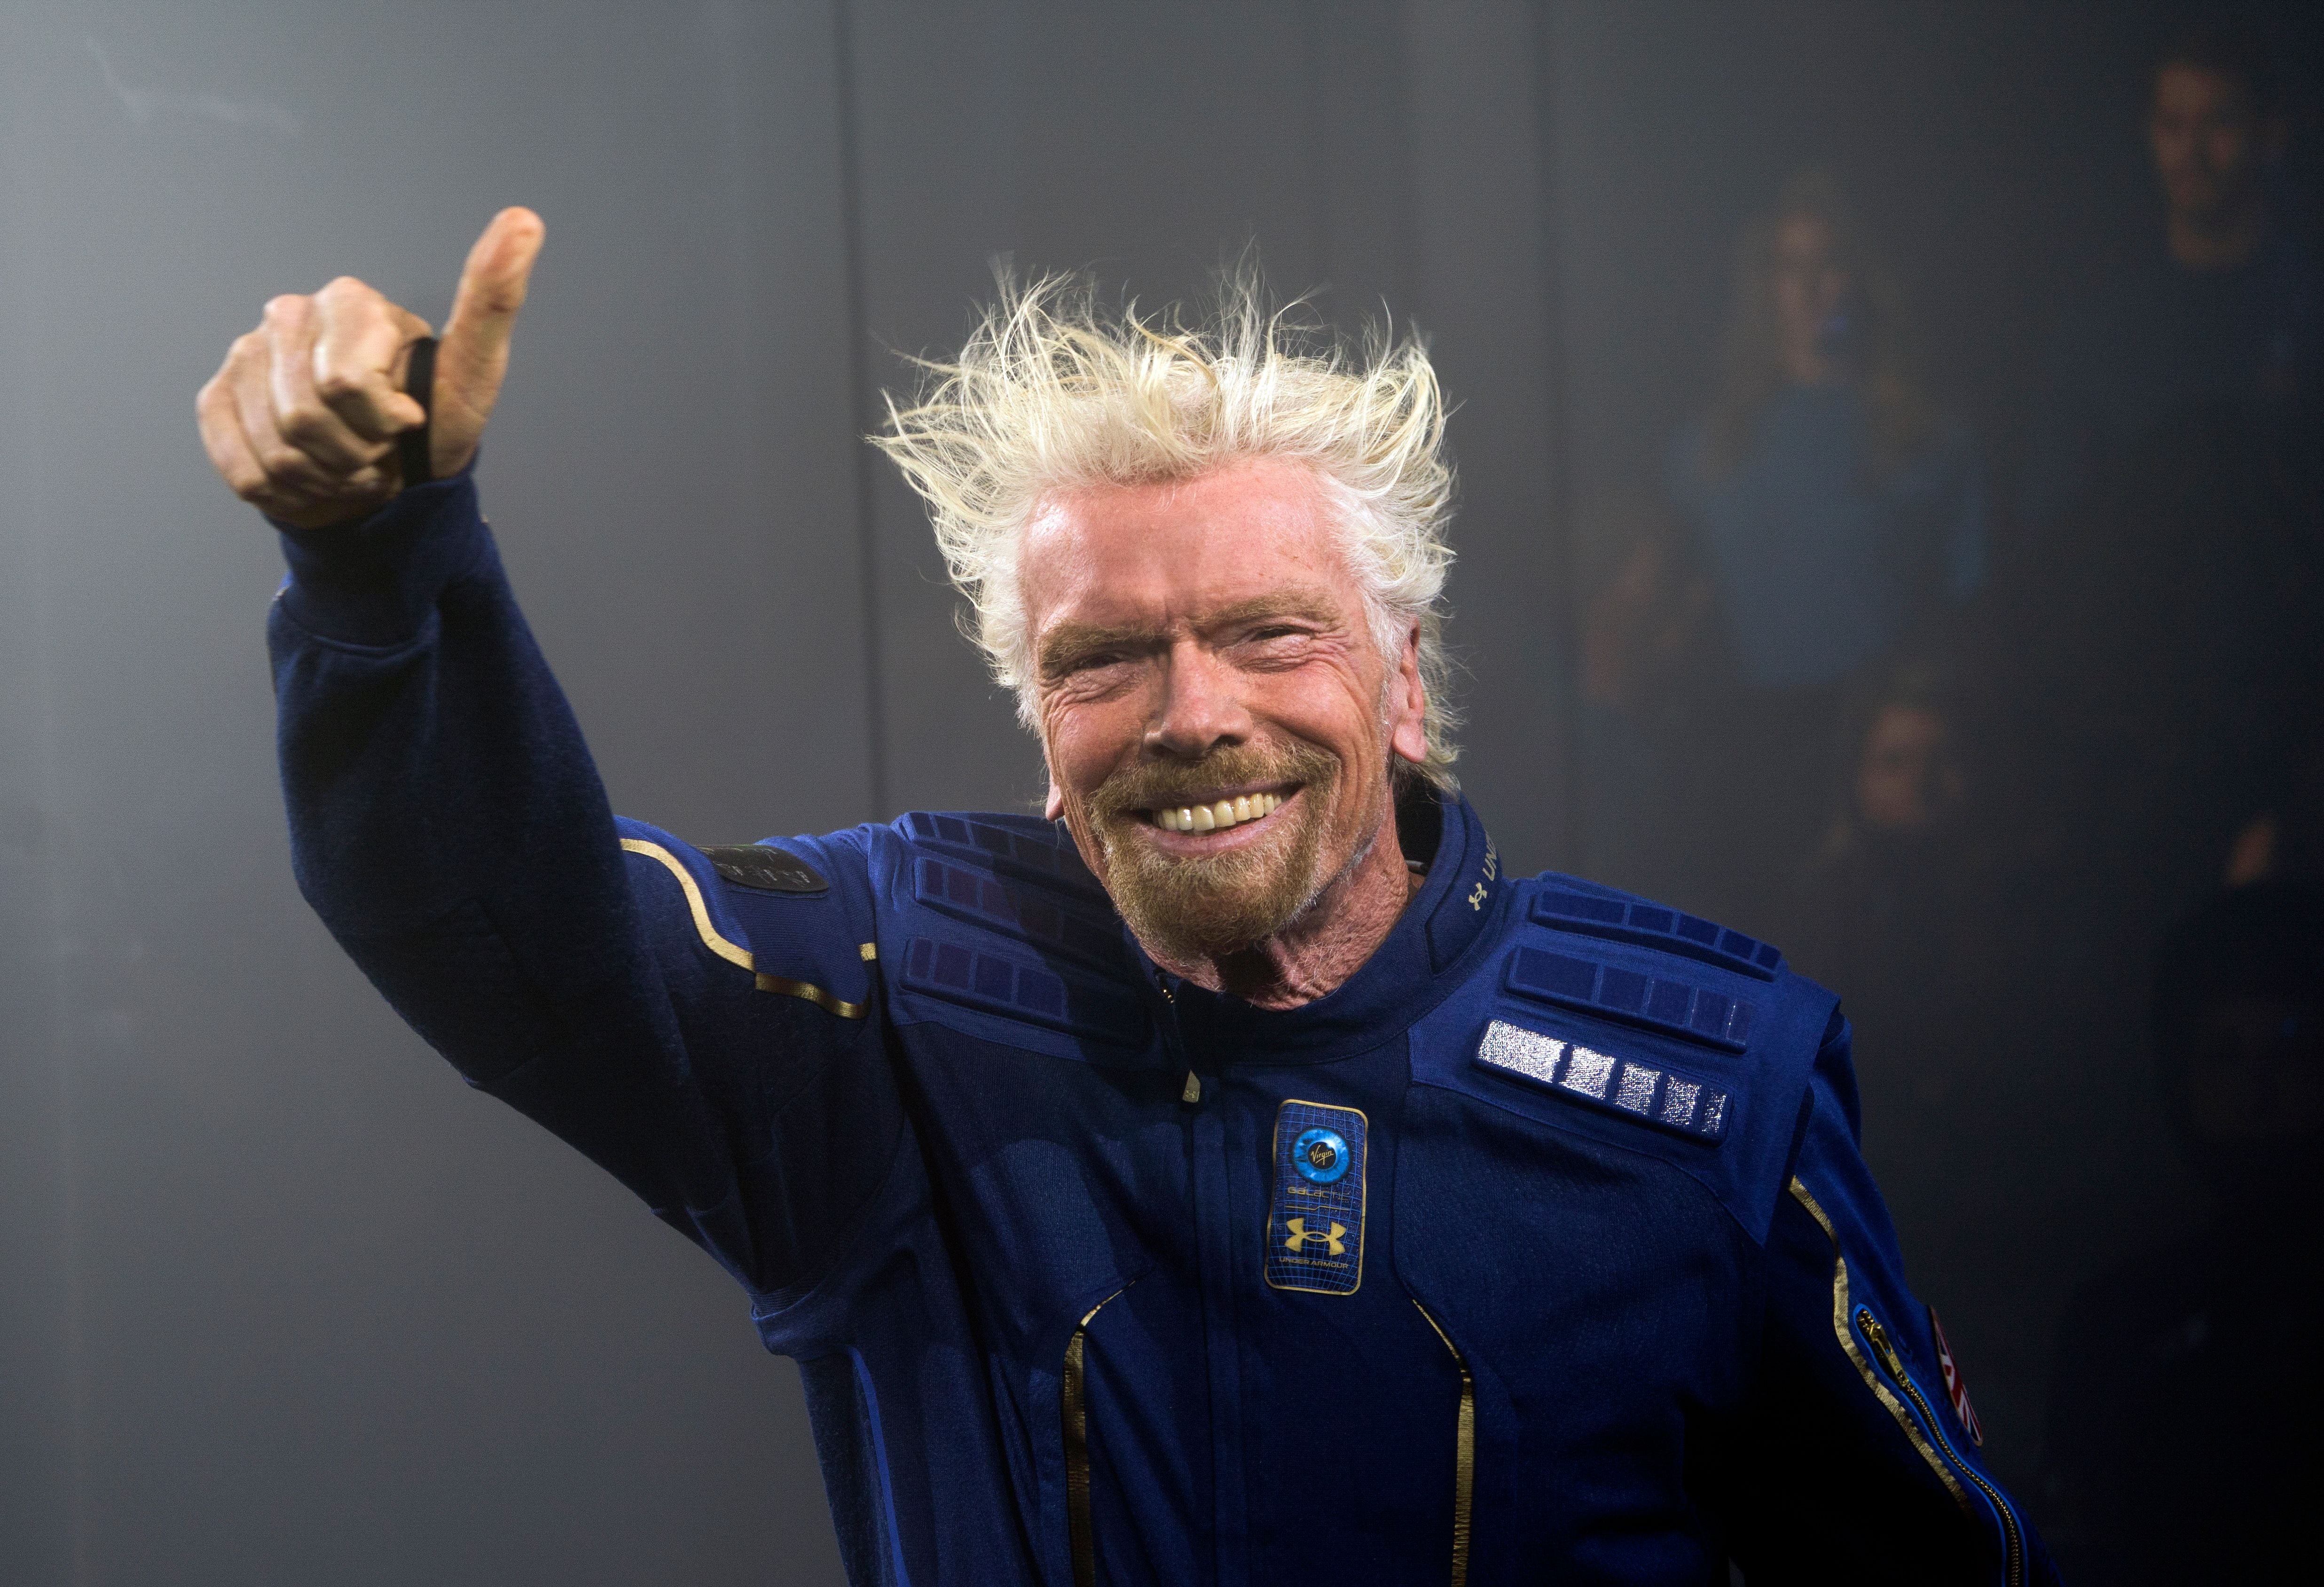 Virgin Galactic's Deal With NASA Shakes Up the Space Tourism Race